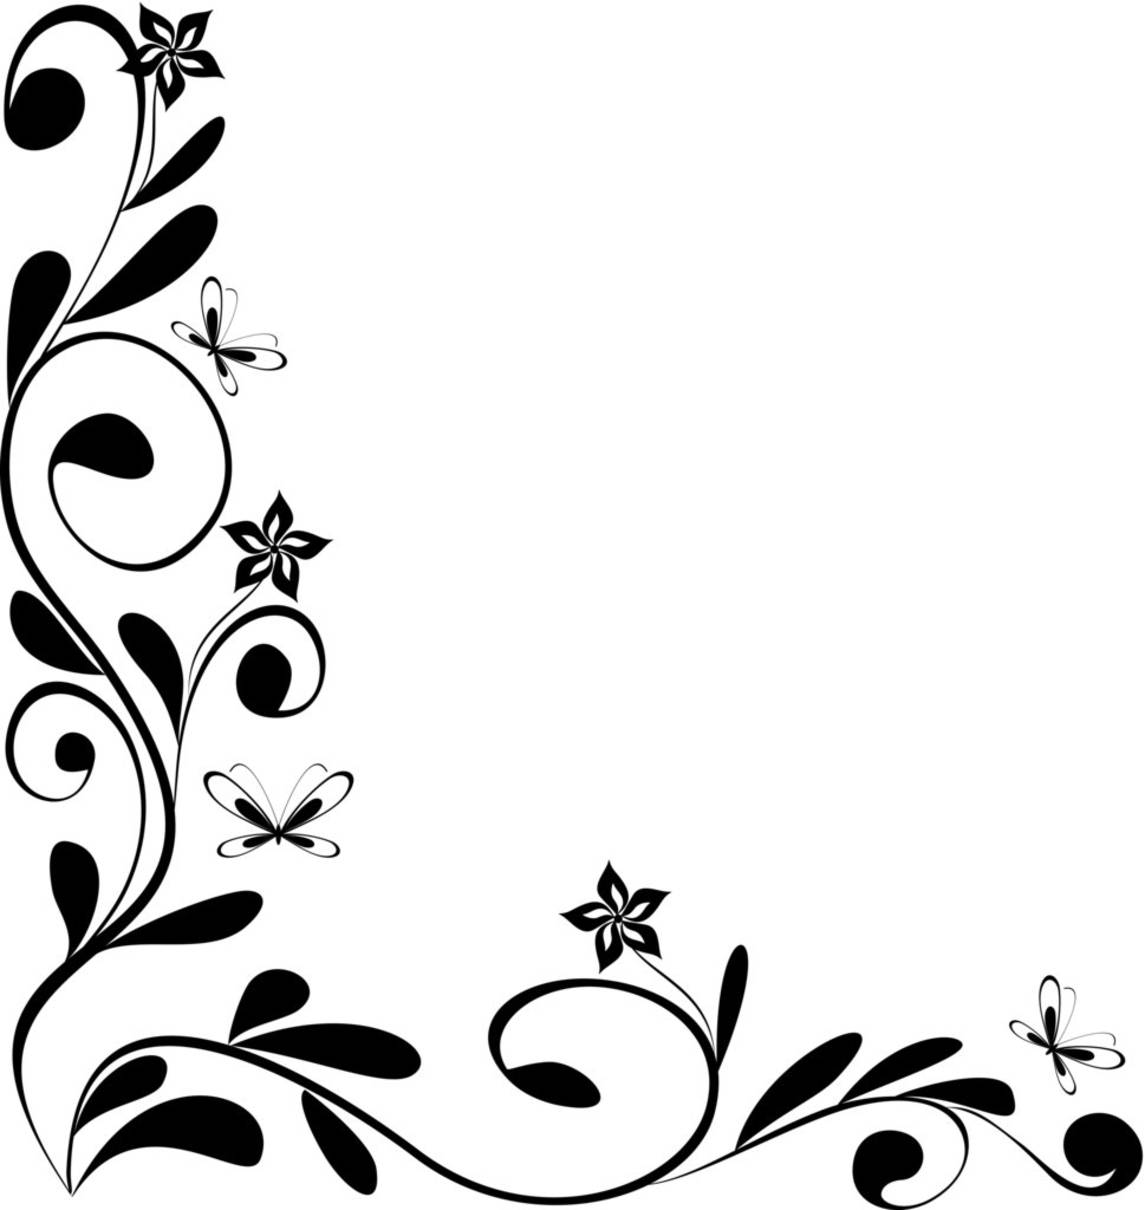 clip art free black and white downloads - photo #21